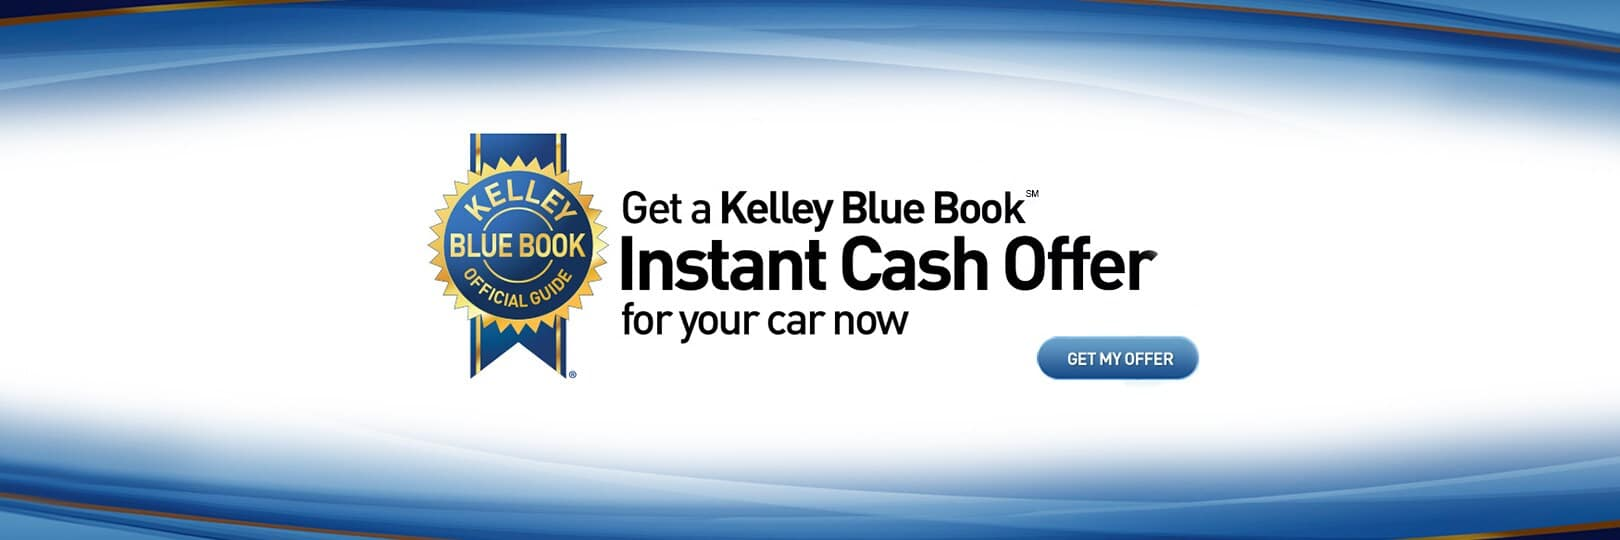 Kelley Blue Book Instant Cash Offer - Banner